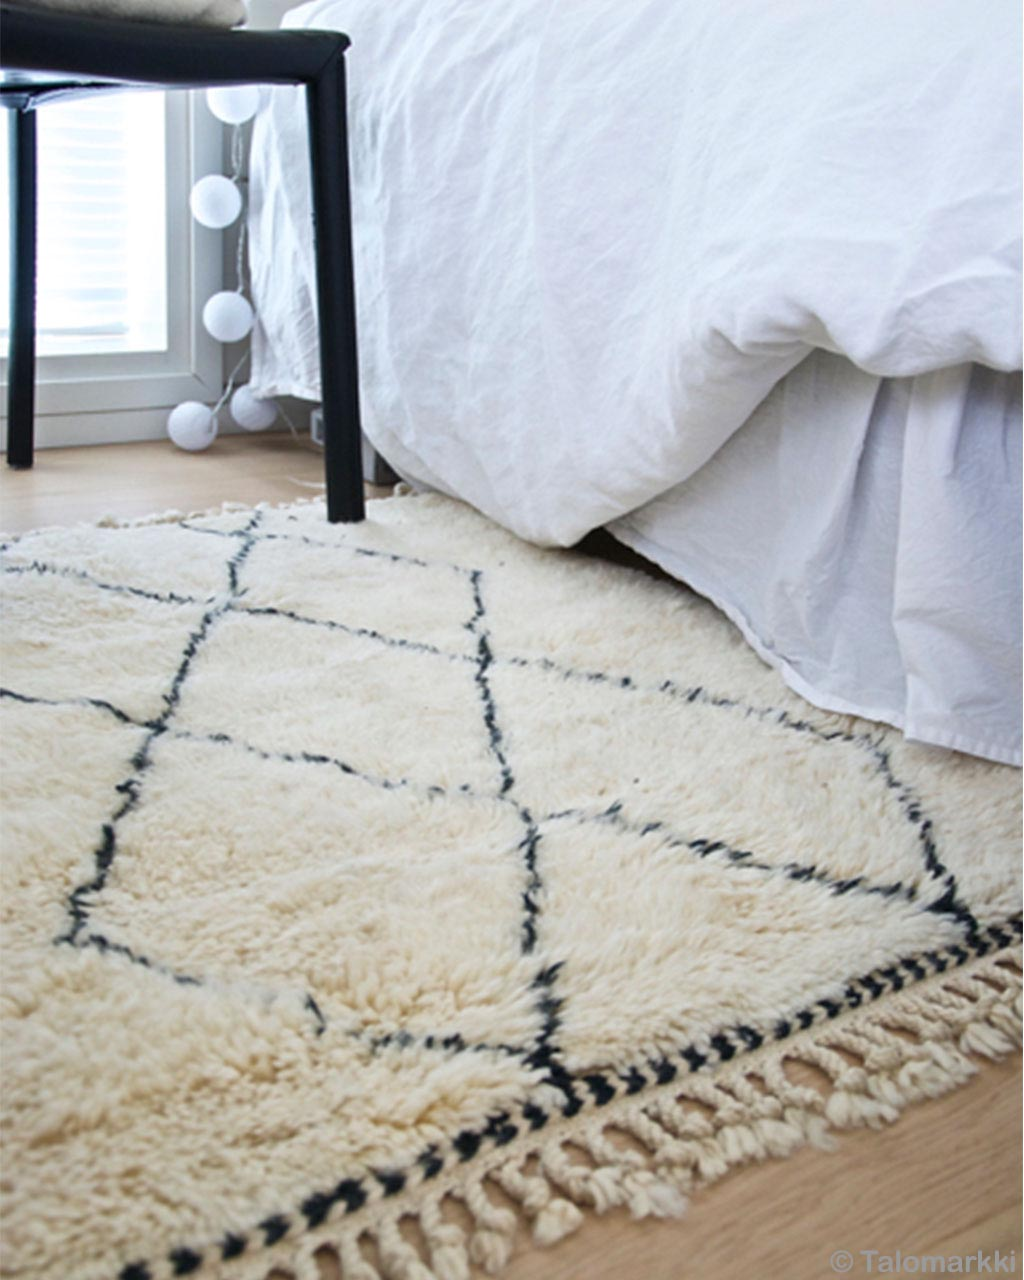 white ball shape bulbs and chair legs made by moroccan modern rug store